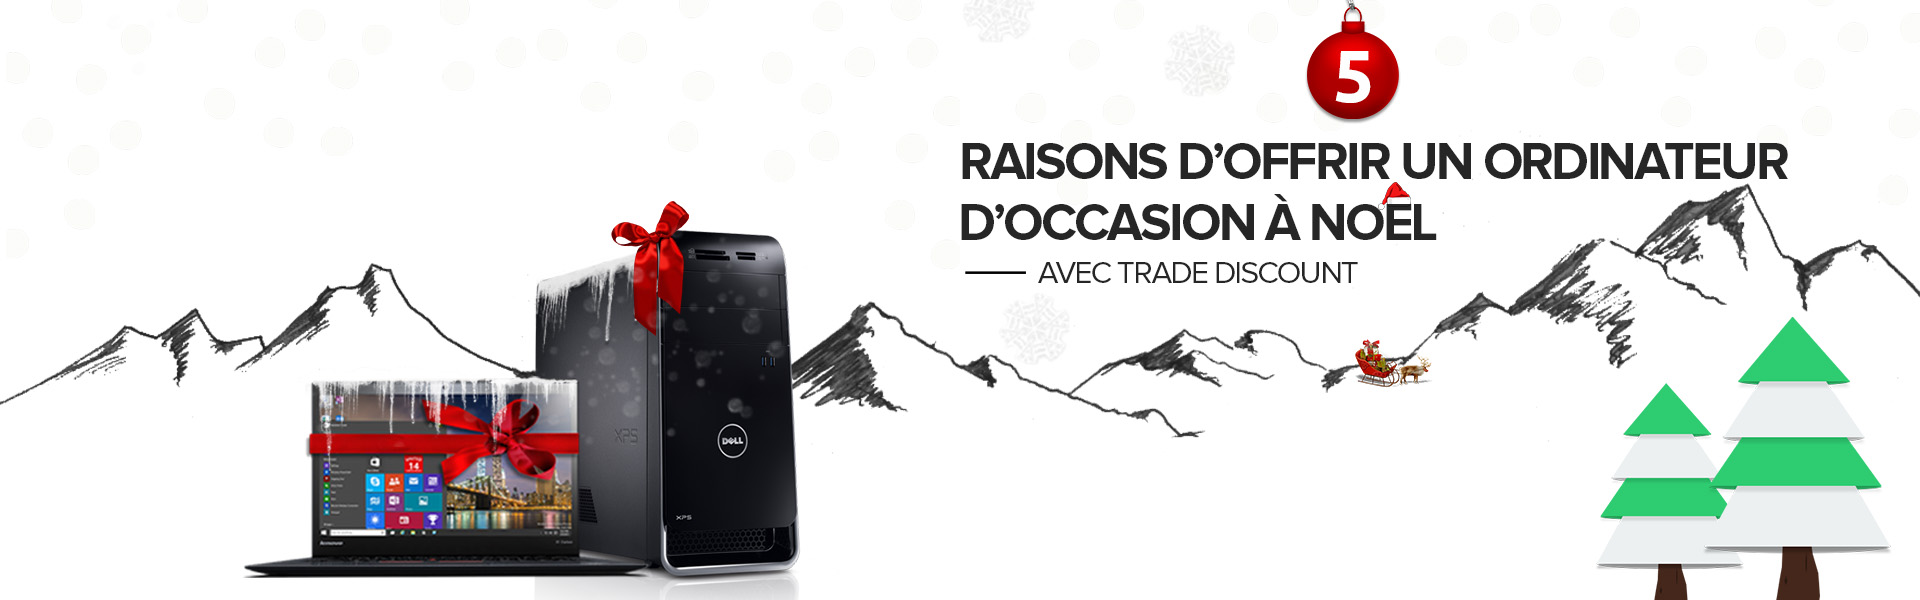 Banniere-trade-discount-guide-offrir-un-pc-occasion-a-noel